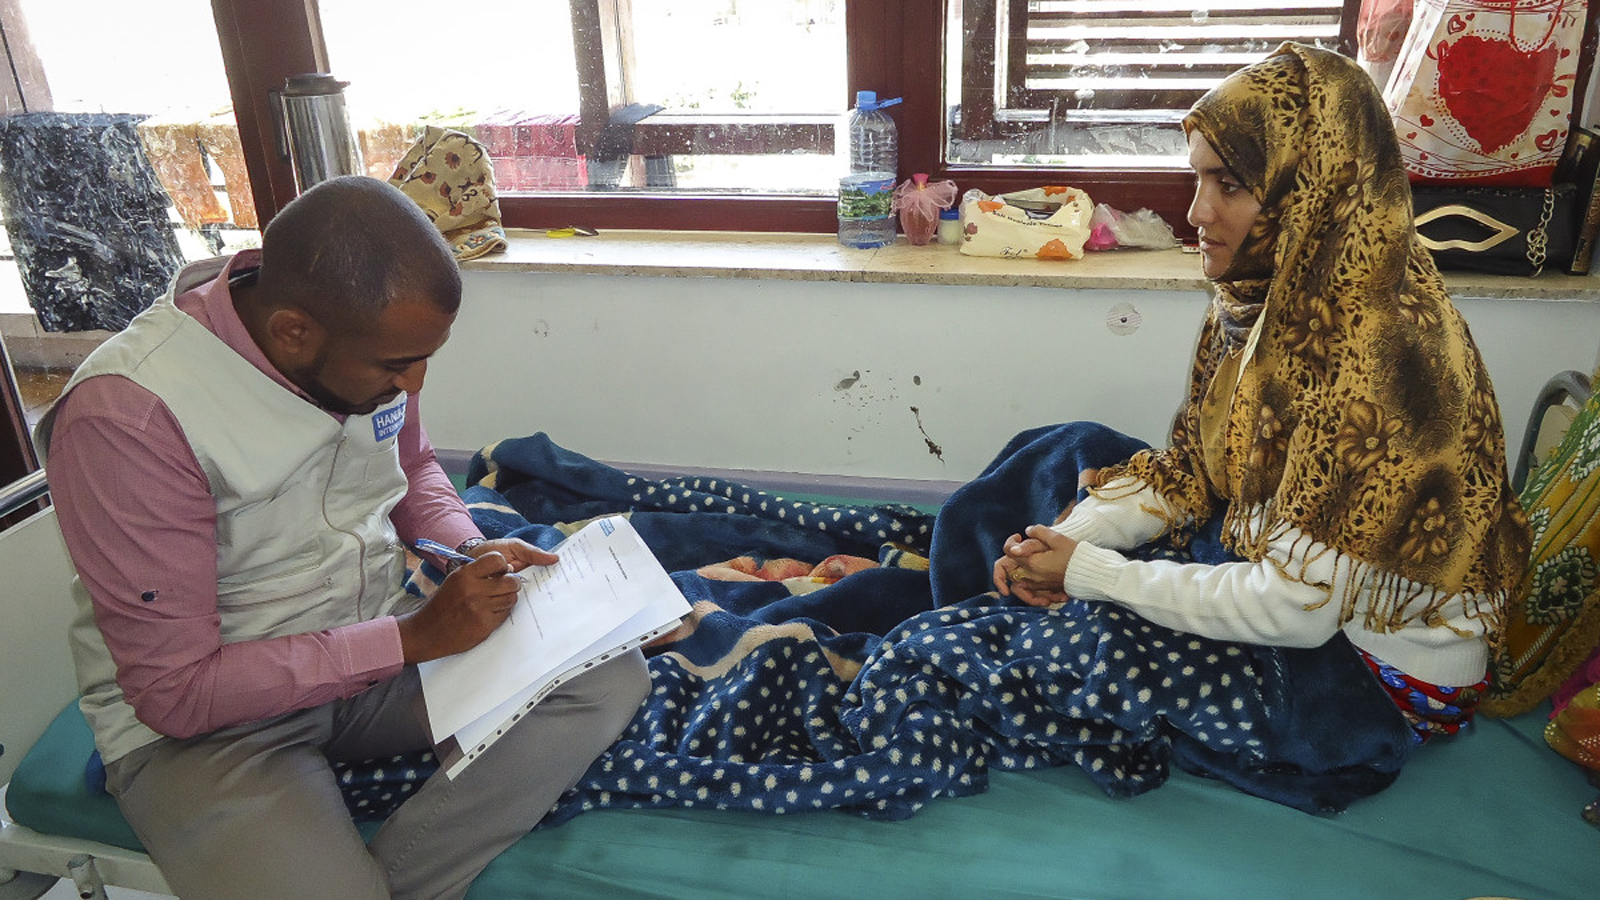 Bushra receives physical therapy from Handicap International in Yemen